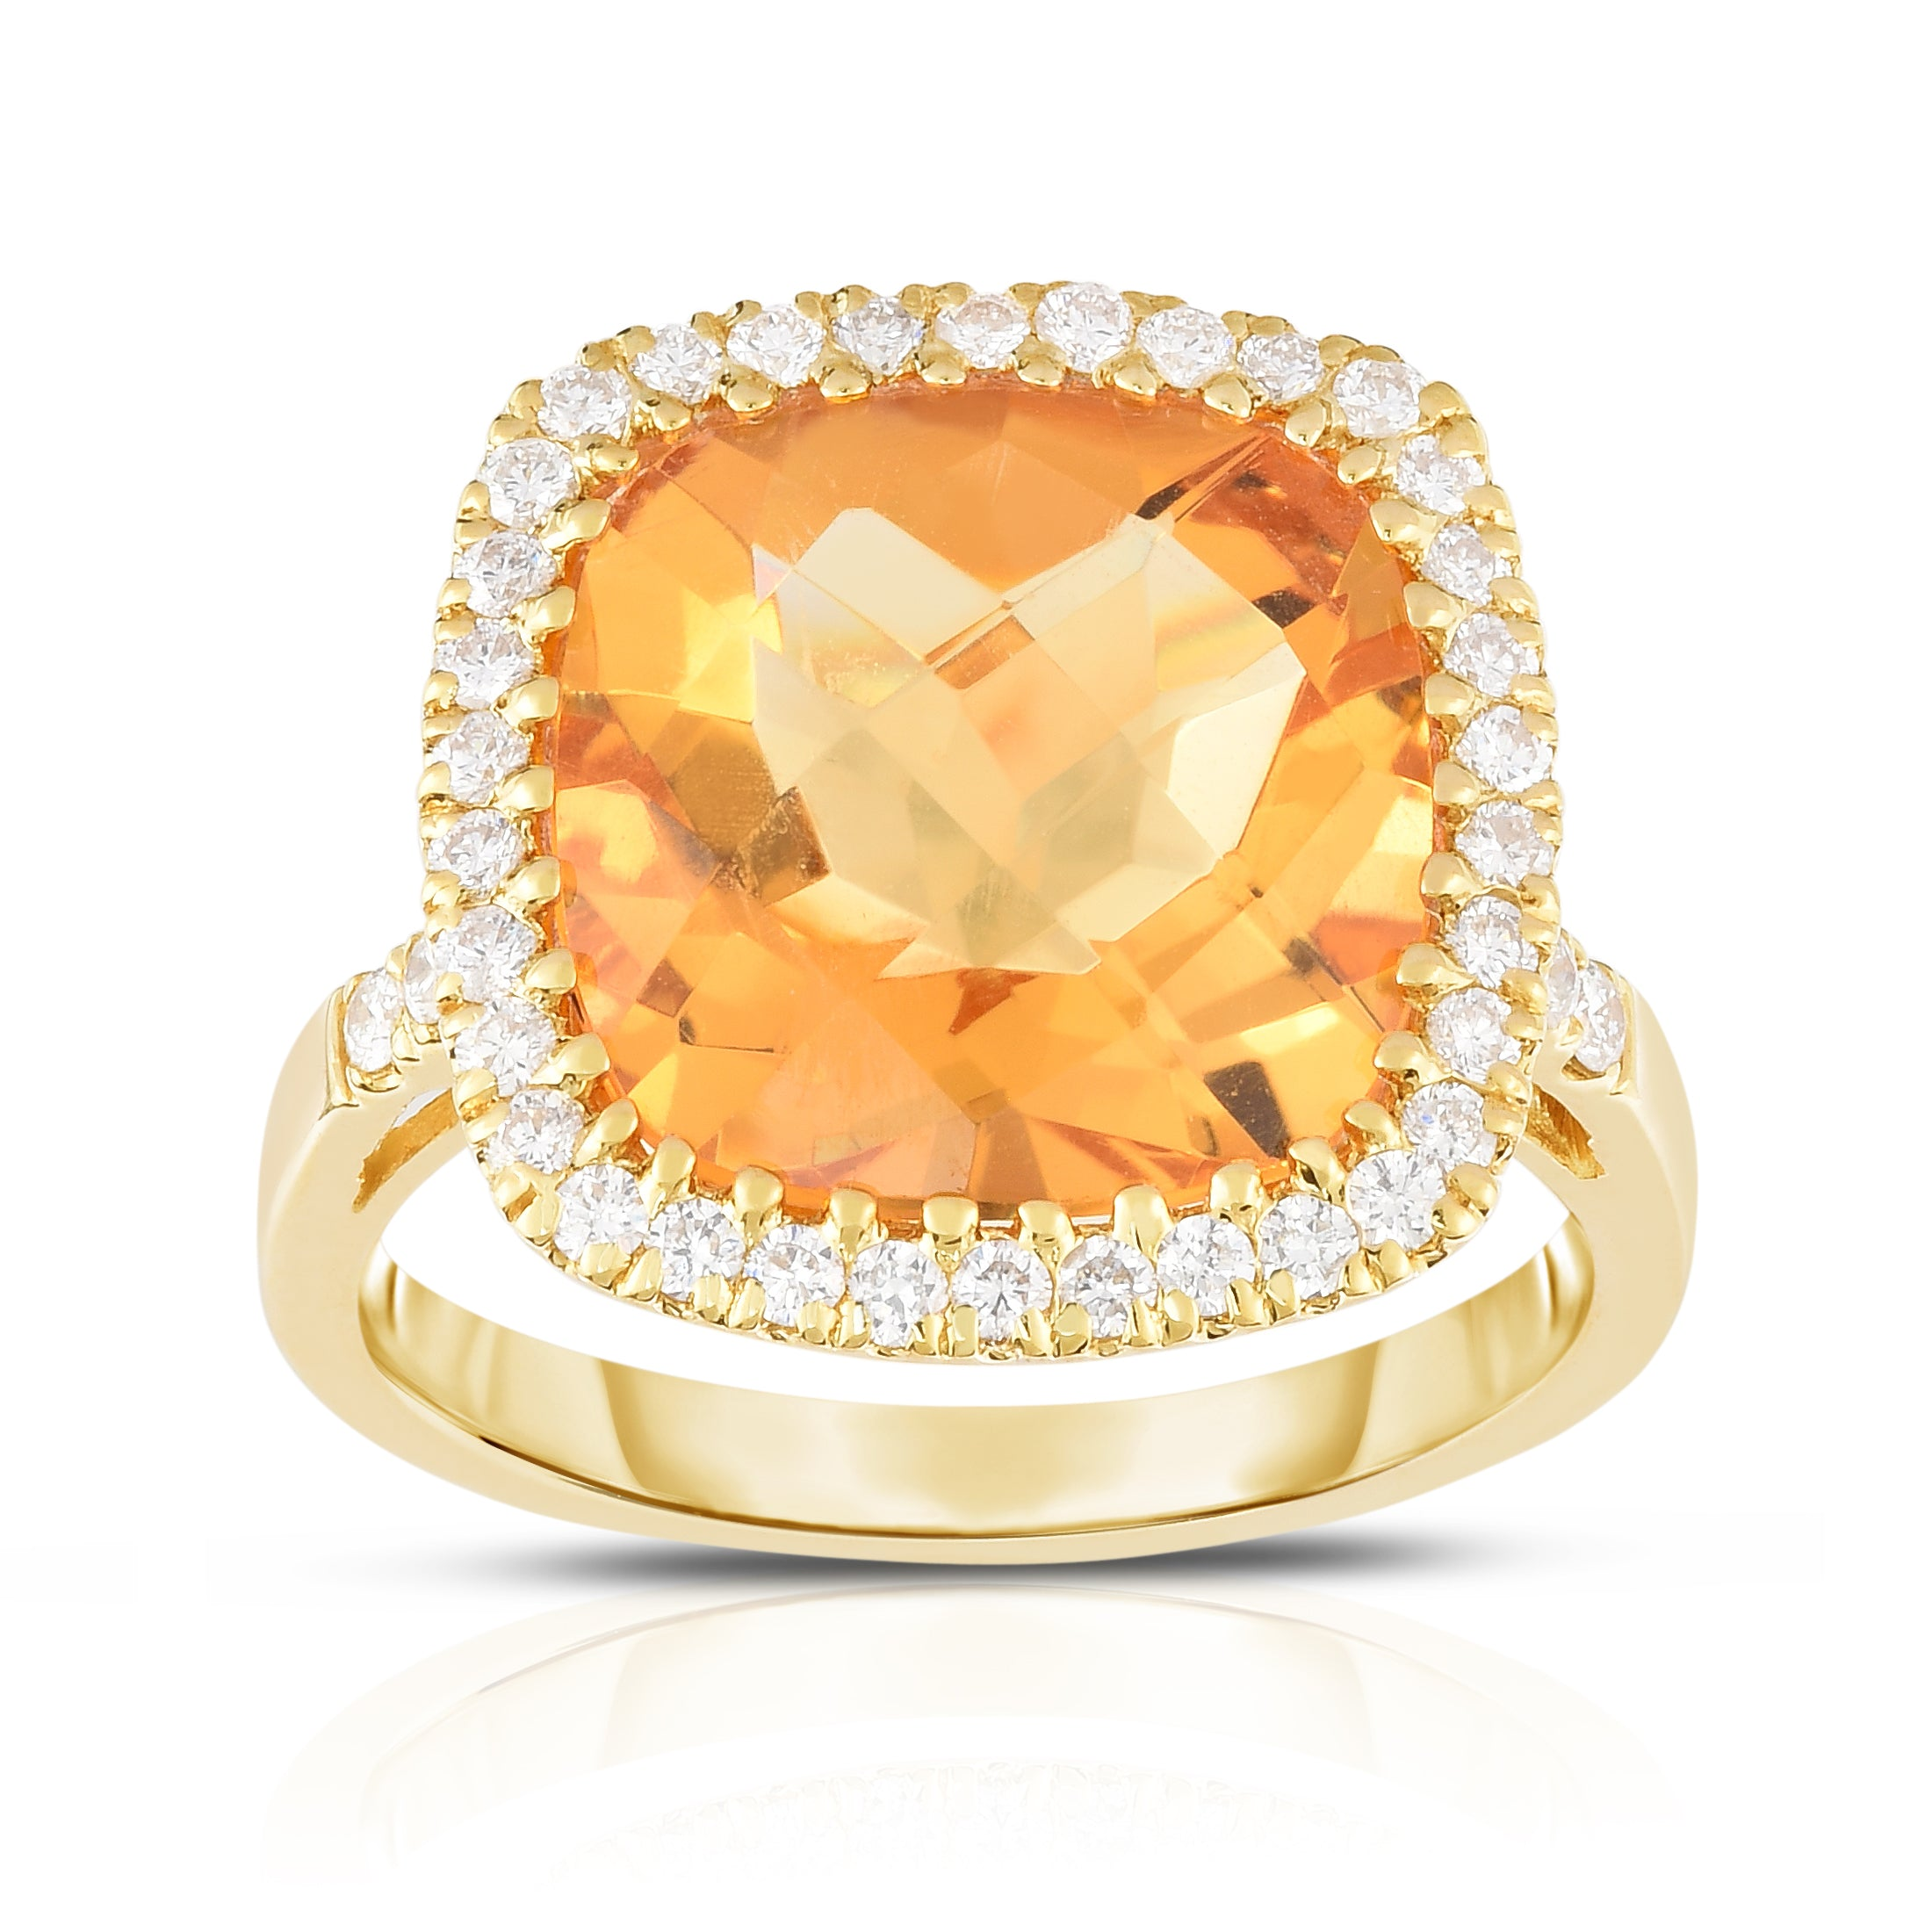 ring rings diamond simon g collection store shop designs modern enchantment engagement ct orange jewelry